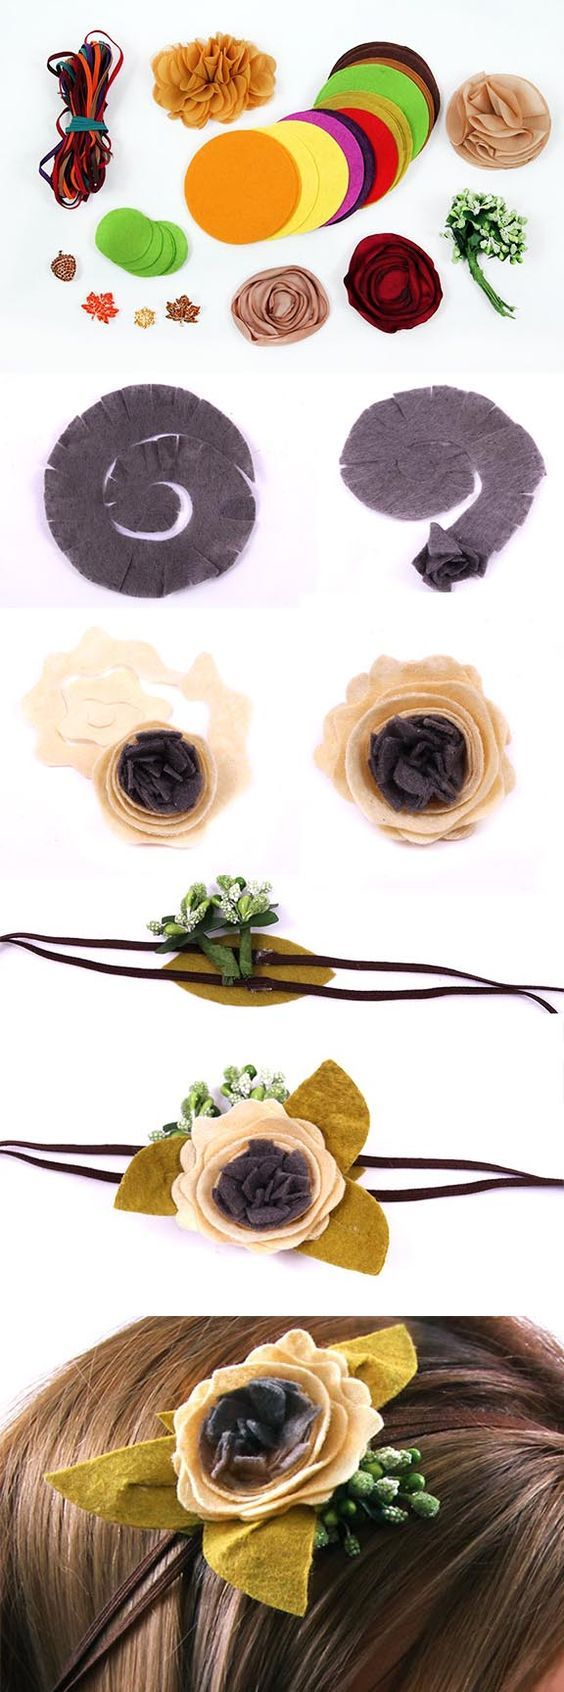 How to Make a Felt Flower Headband- add a new style of felt flower to your handmade headband repertoire!: